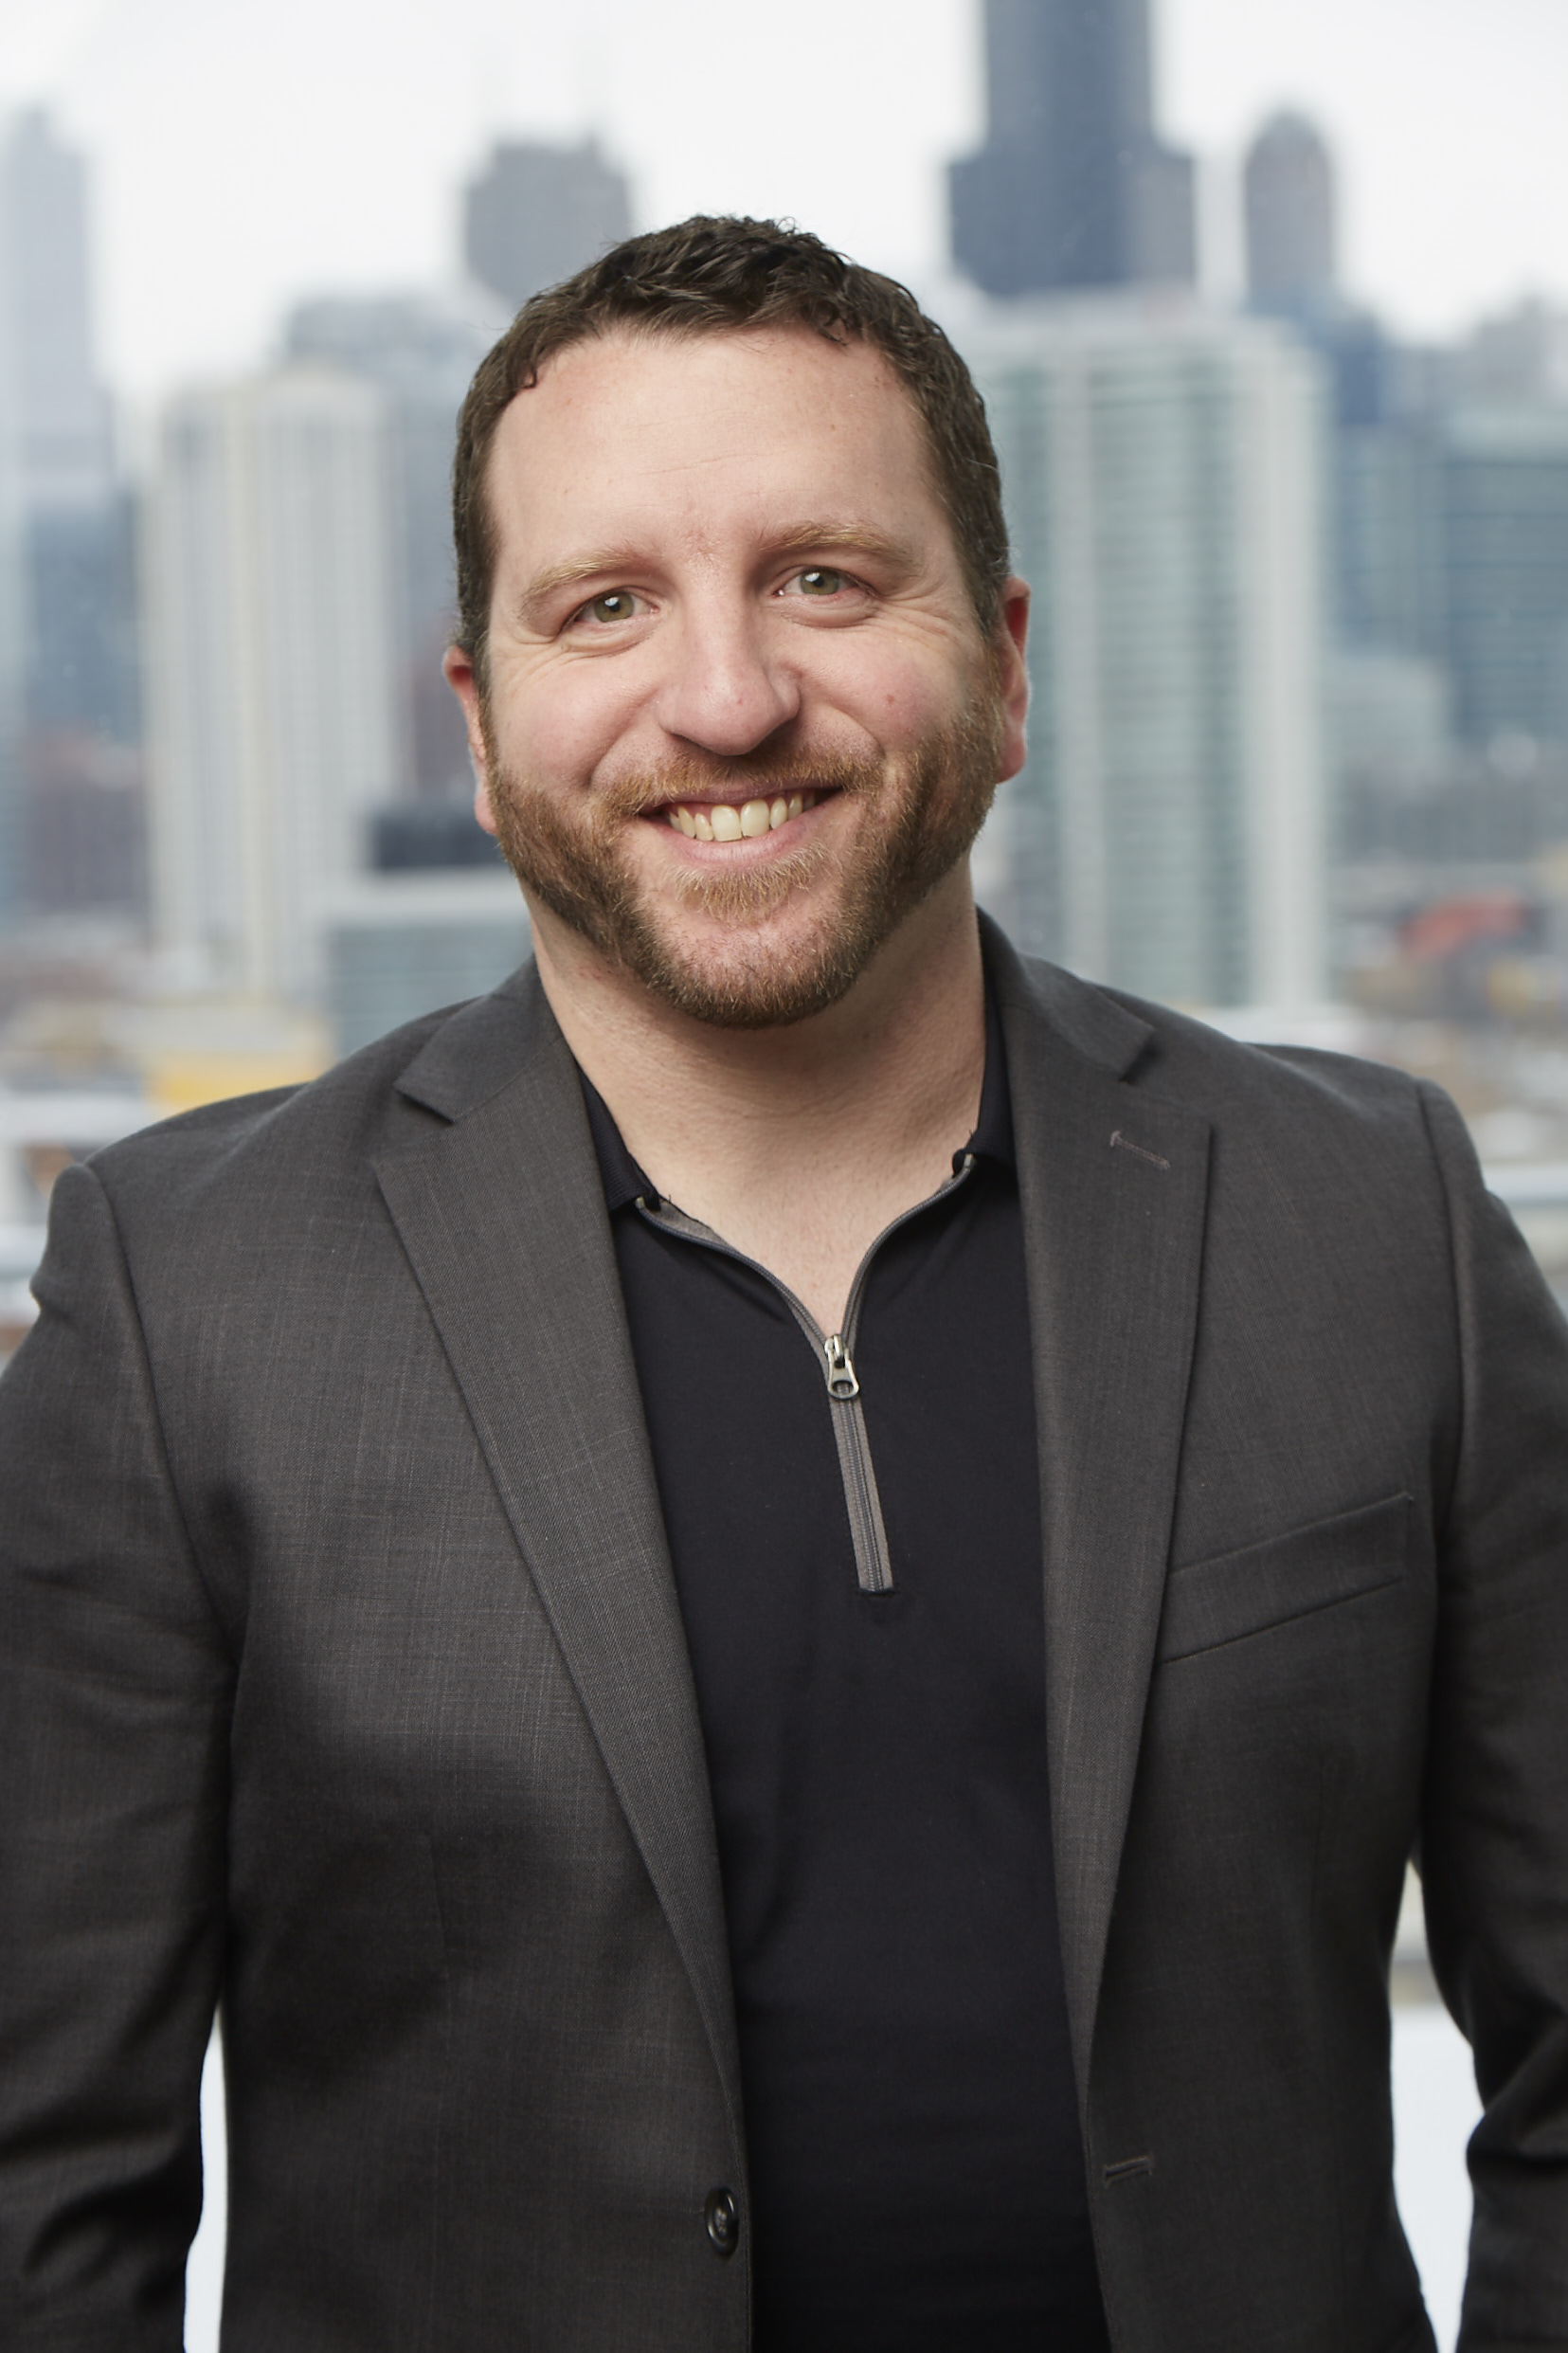 Kevin Nelson - Kevin has worked in leasing for several years and has made the jump into helping clients find rentals now on the outside. He quickly gets along with everyone, has great time management skills, and first hand market knowledge. Kevin will make sure you get the best deal on the market!